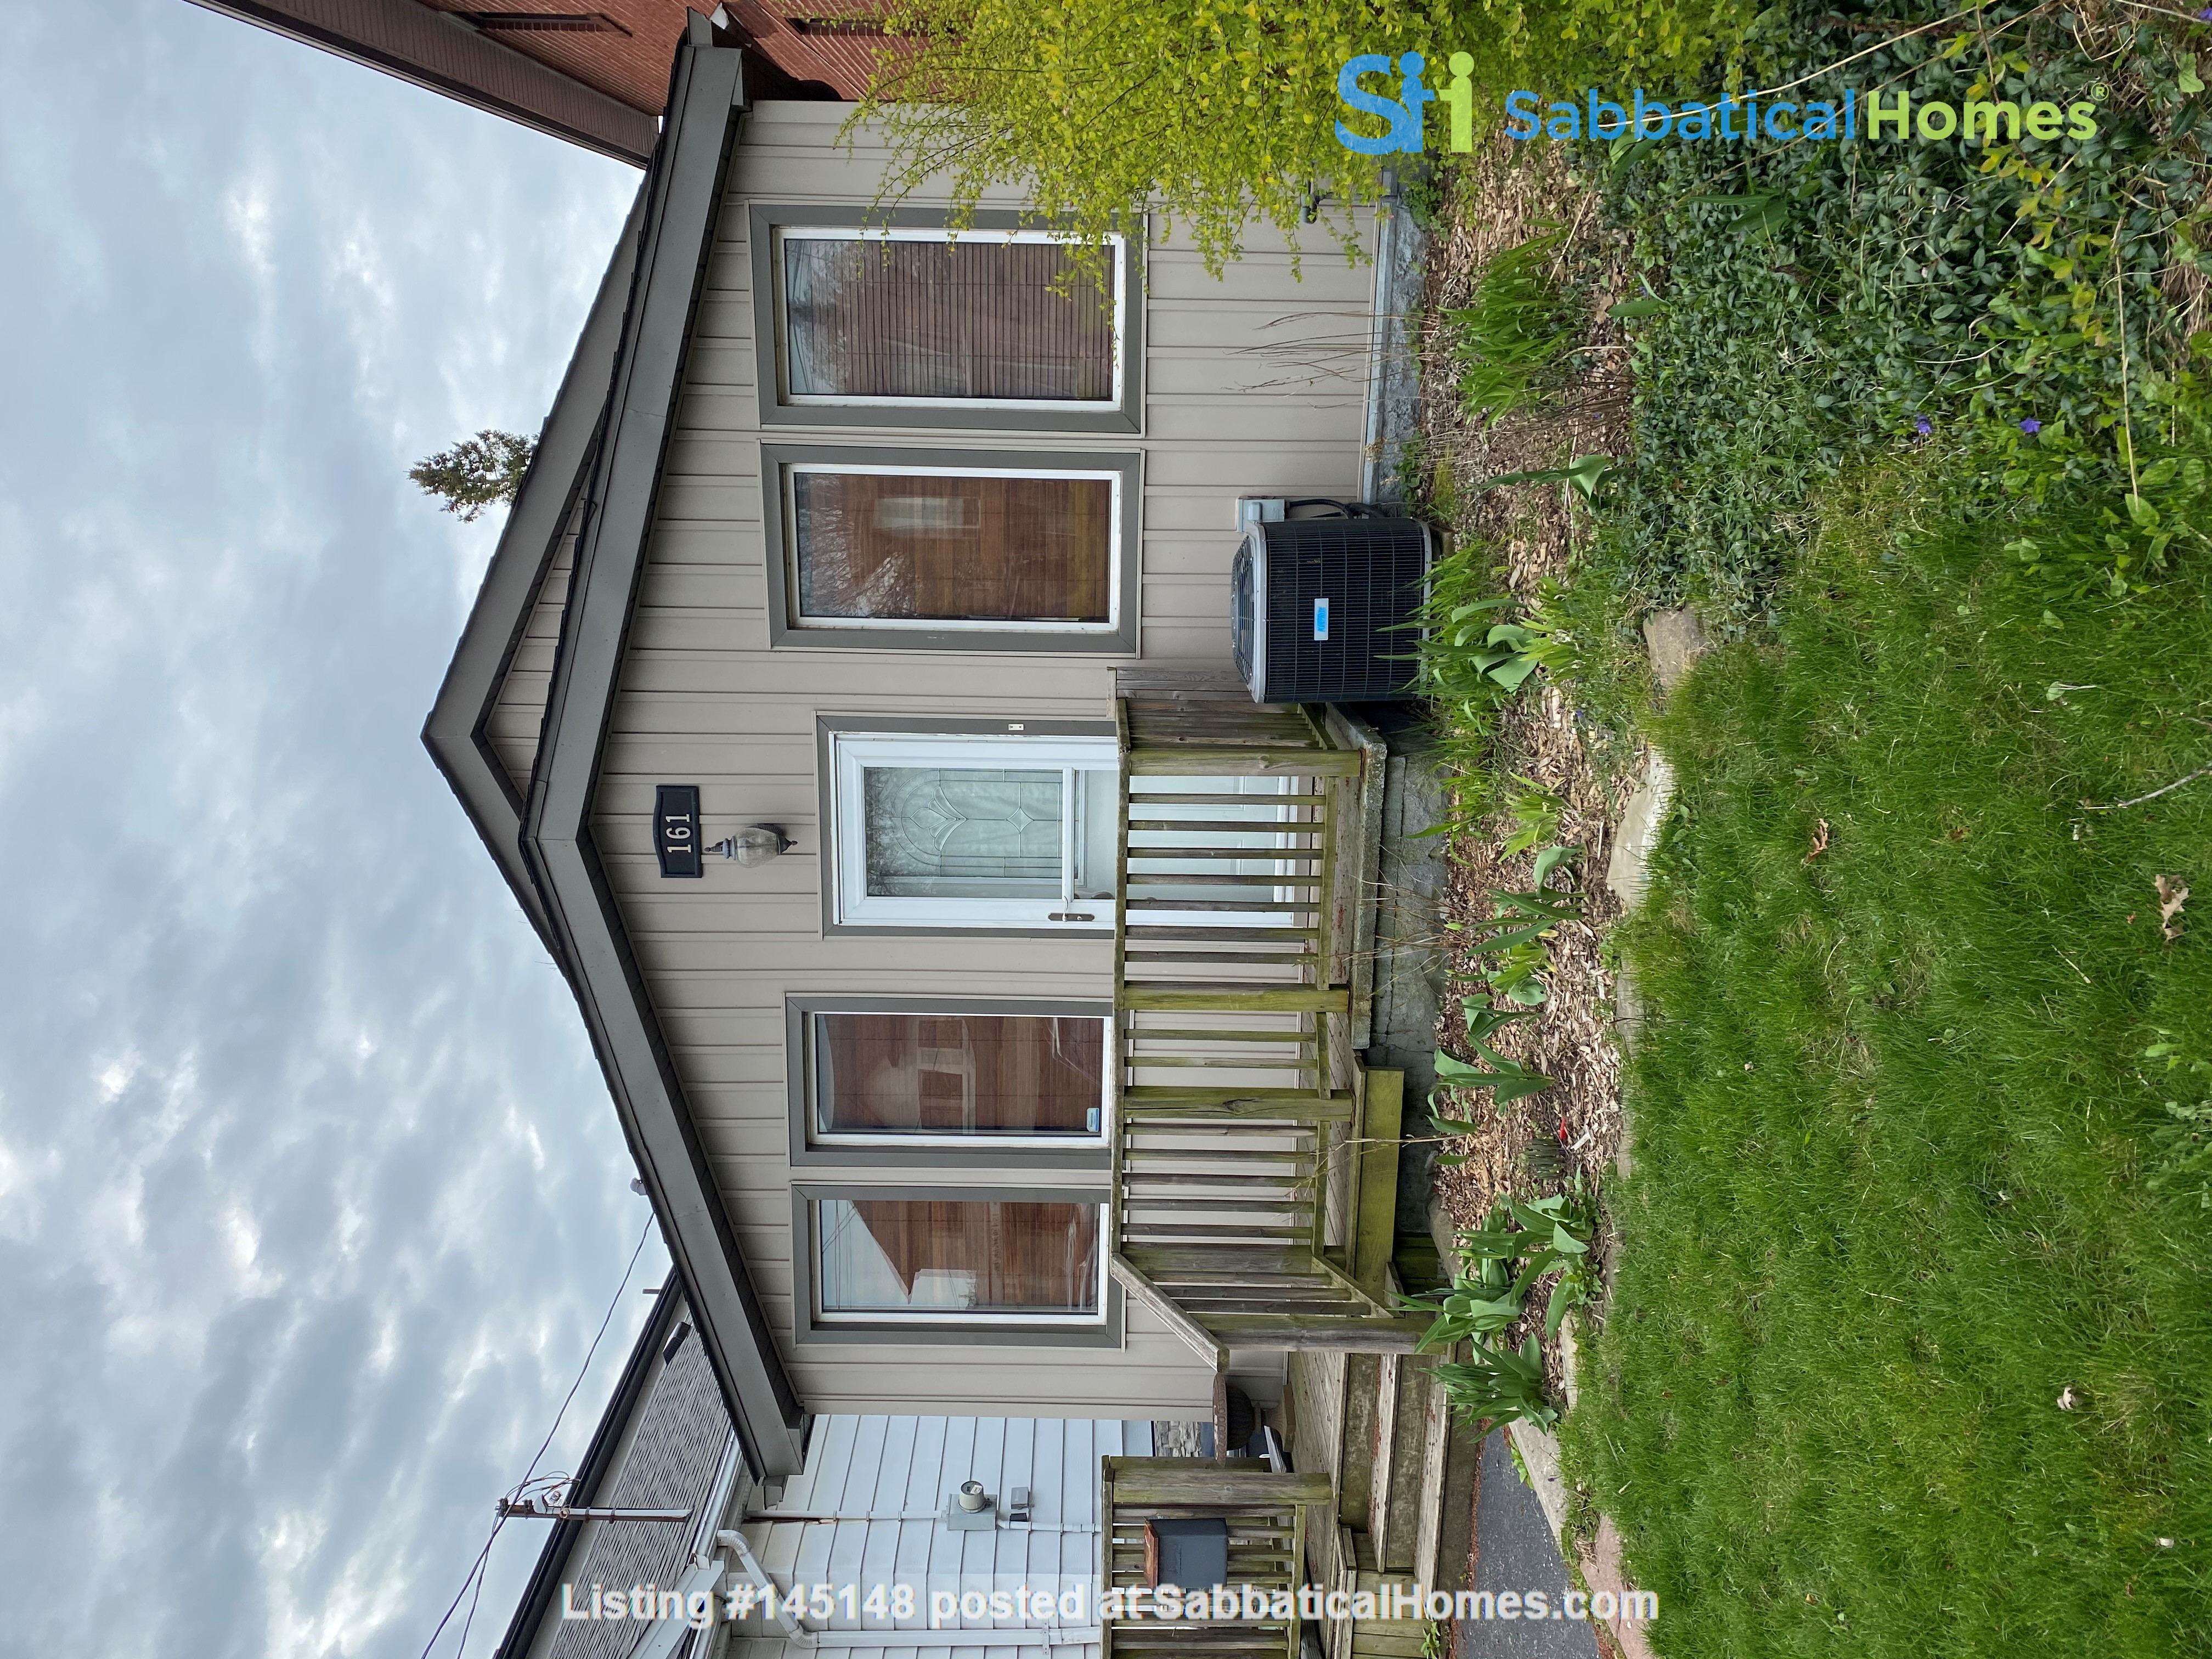 2-BR Renovated Bungalow: Perfect for a family with young kids! Home Rental in Toronto, Ontario, Canada 6